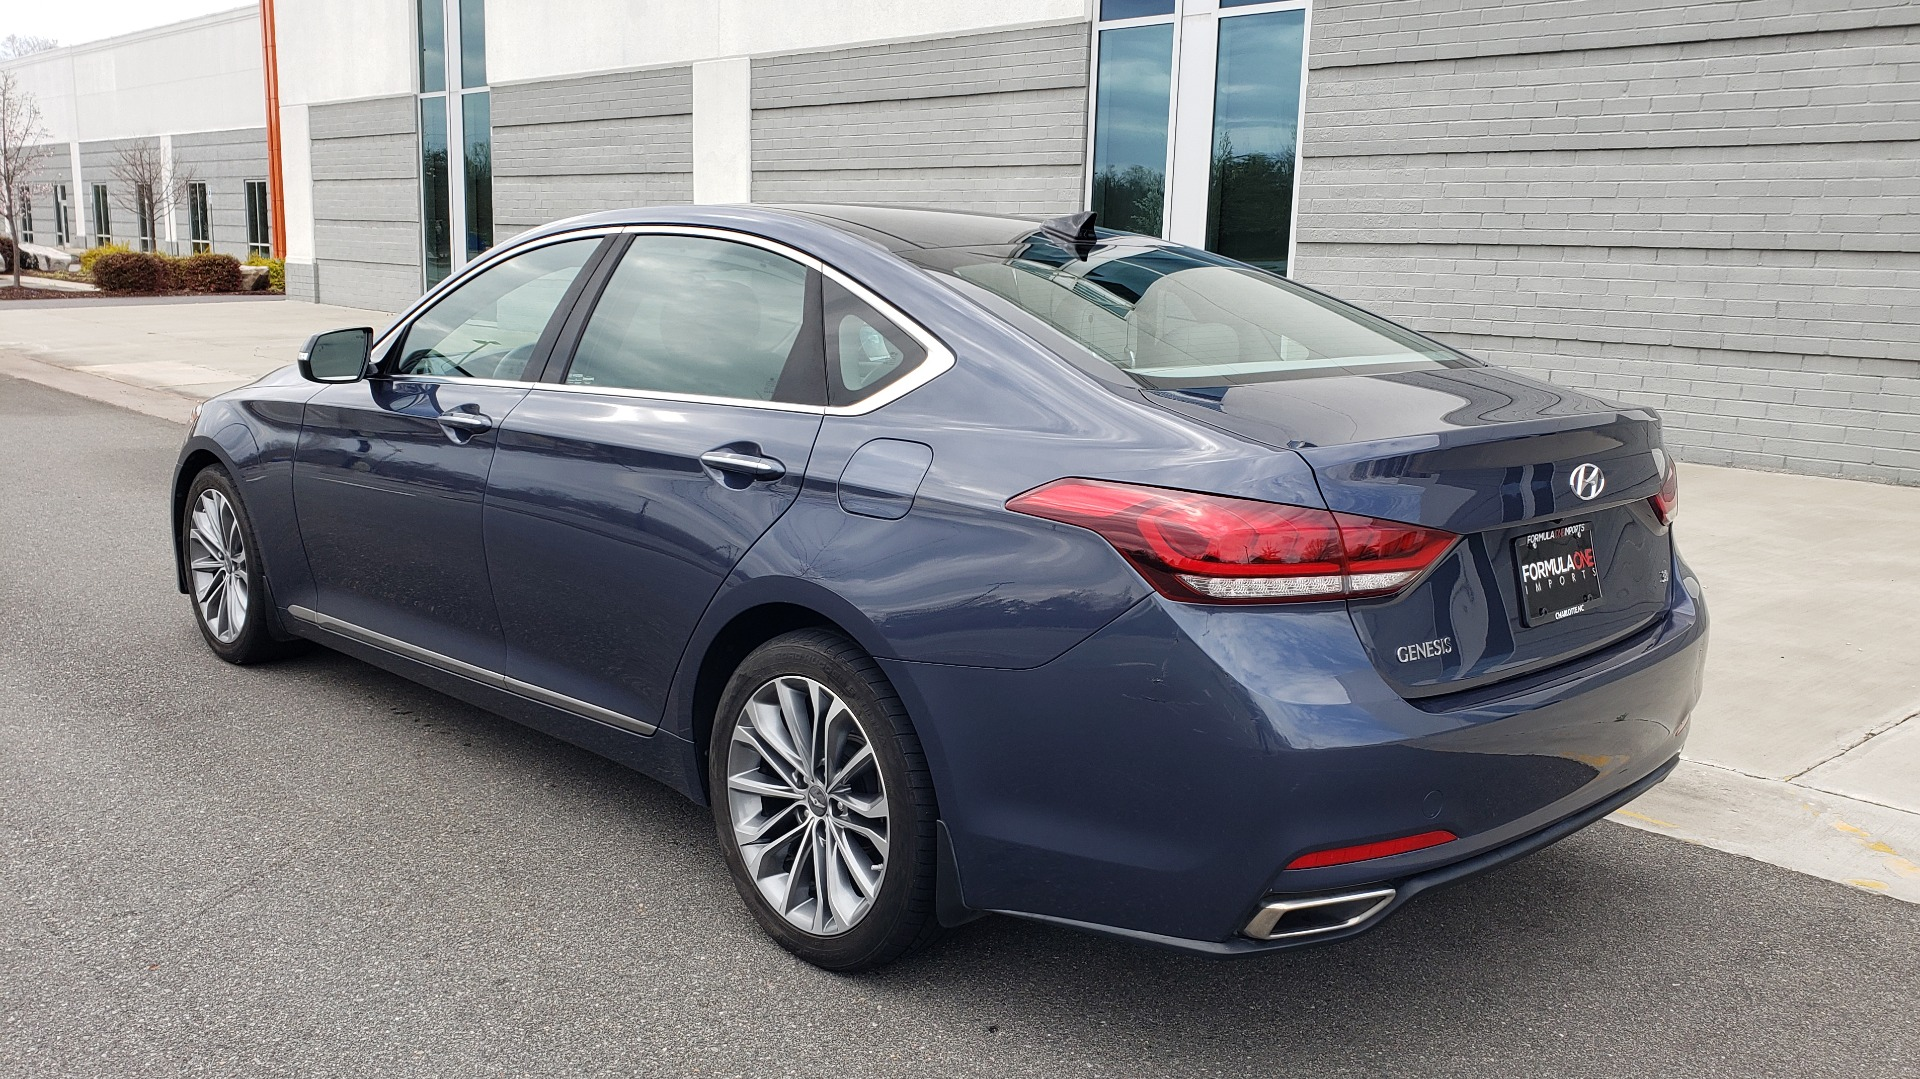 Used 2015 Hyundai GENESIS 3.8L V6 / RWD / SIGNATURE PKG / PANO-ROOF / REARVIEW for sale Sold at Formula Imports in Charlotte NC 28227 4